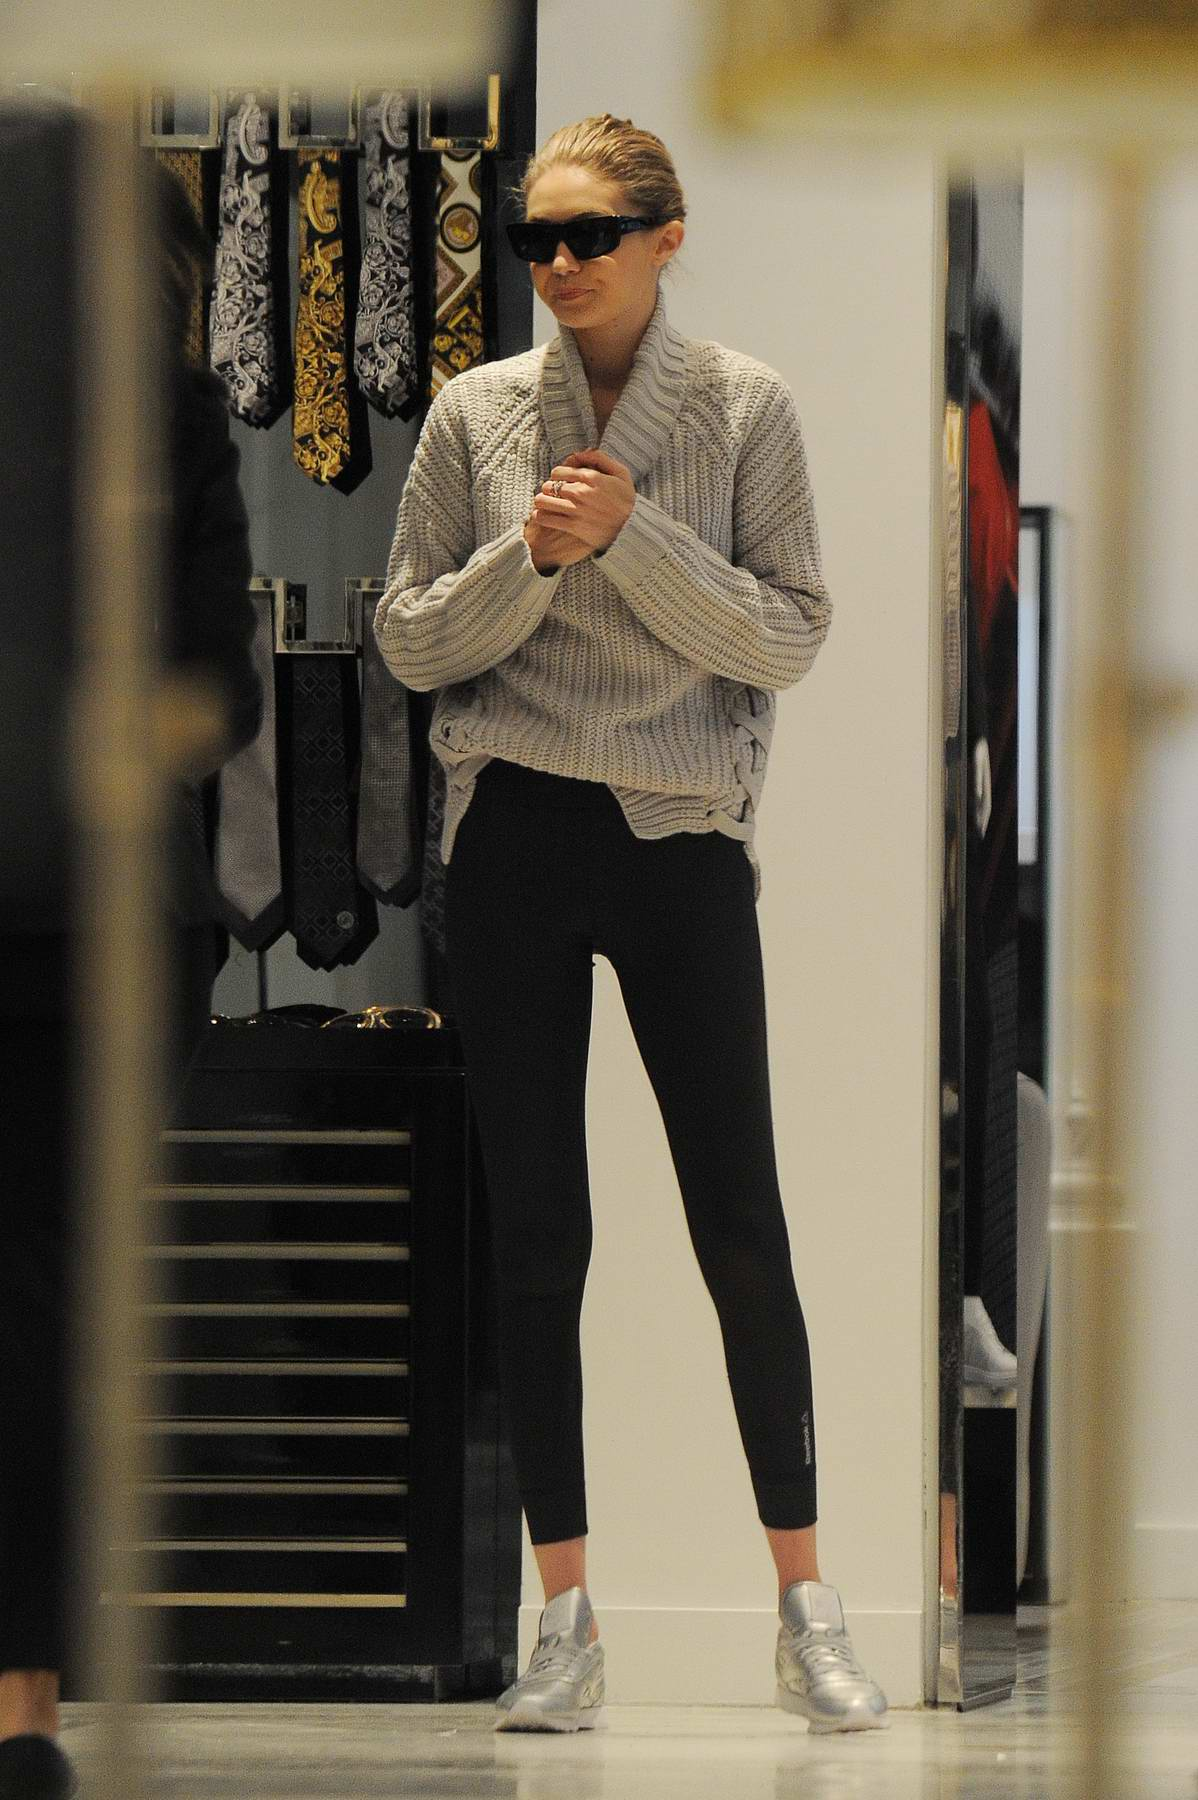 Gigi Hadid wears a grey turtleneck sweater and black leggings while shopping in Manhattan, New York City